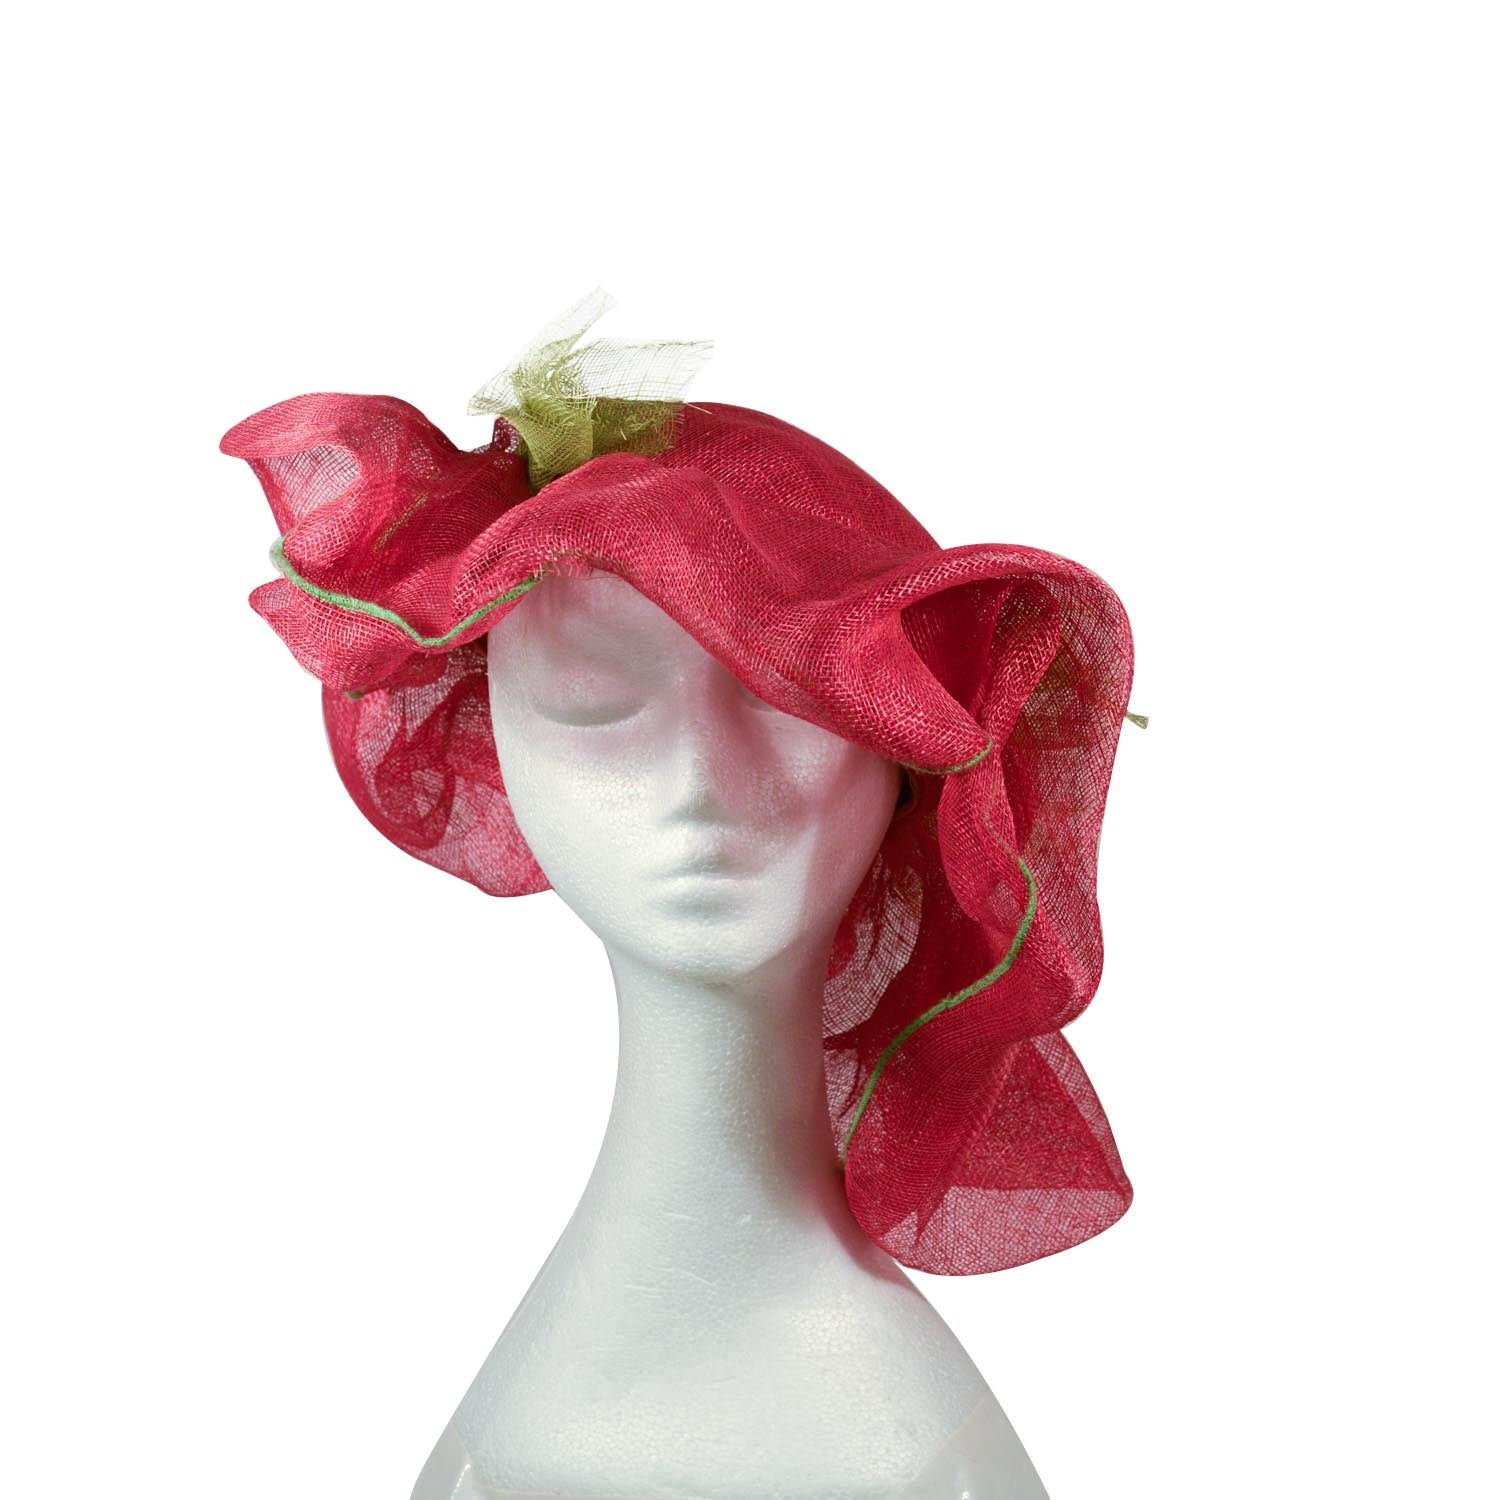 Red and green Elsa Gary paris bespoke hat from Paris